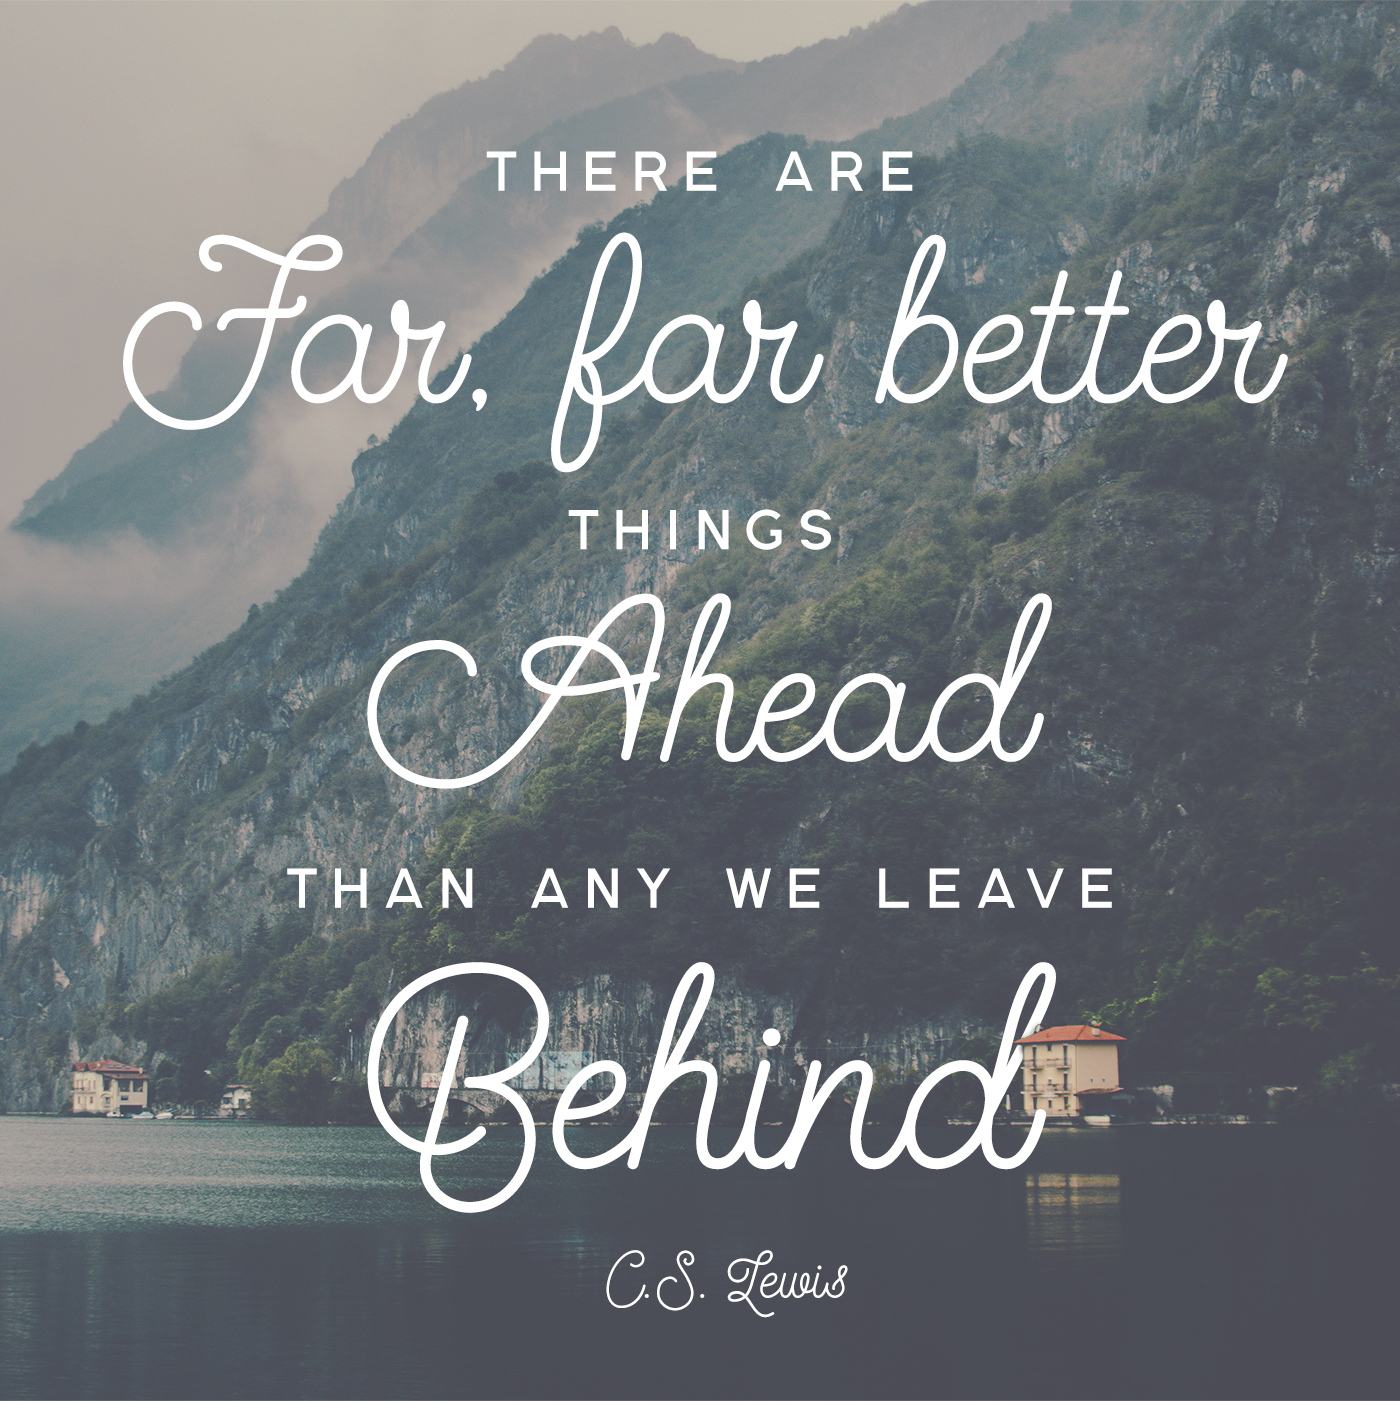 Better Things Ahead Cslewis Quotes To Live By Pinterest